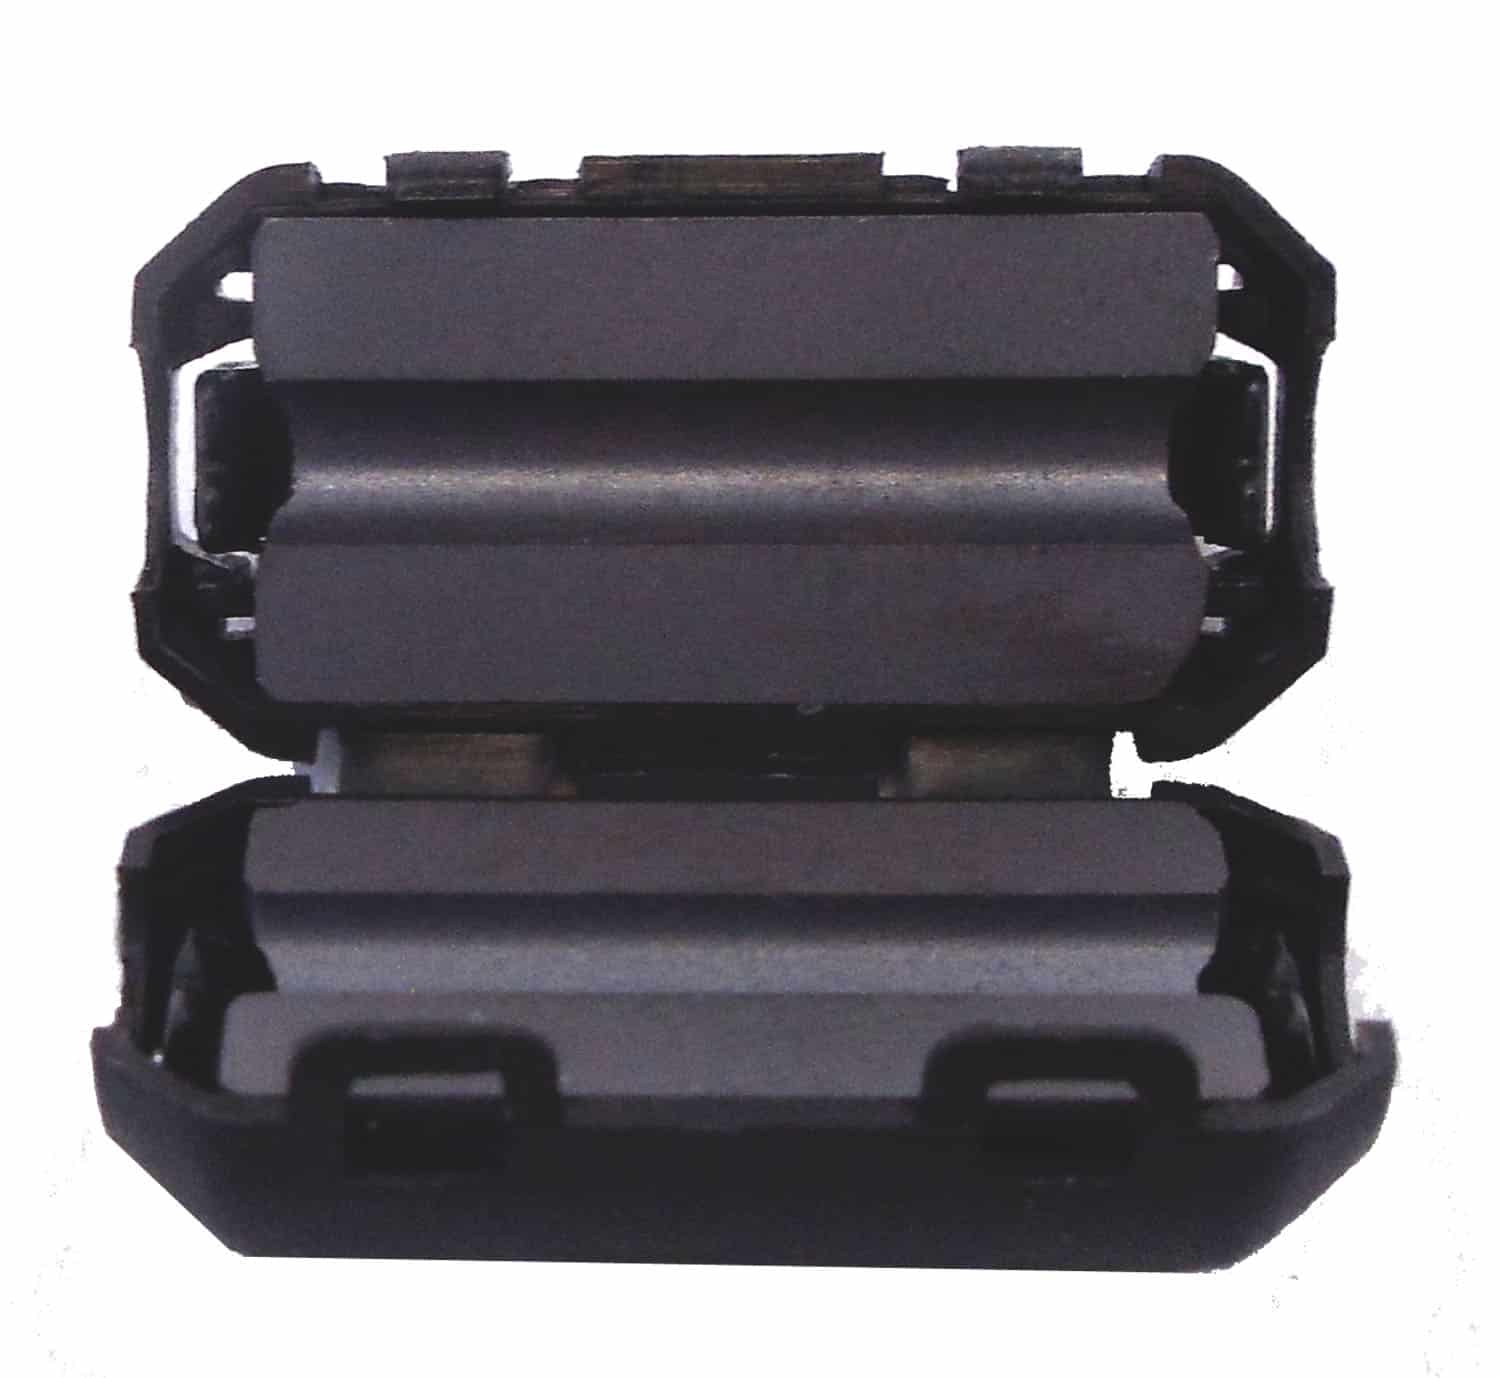 RFC2 - Snap On Rf Choke For Up To 10 Gauge Wire